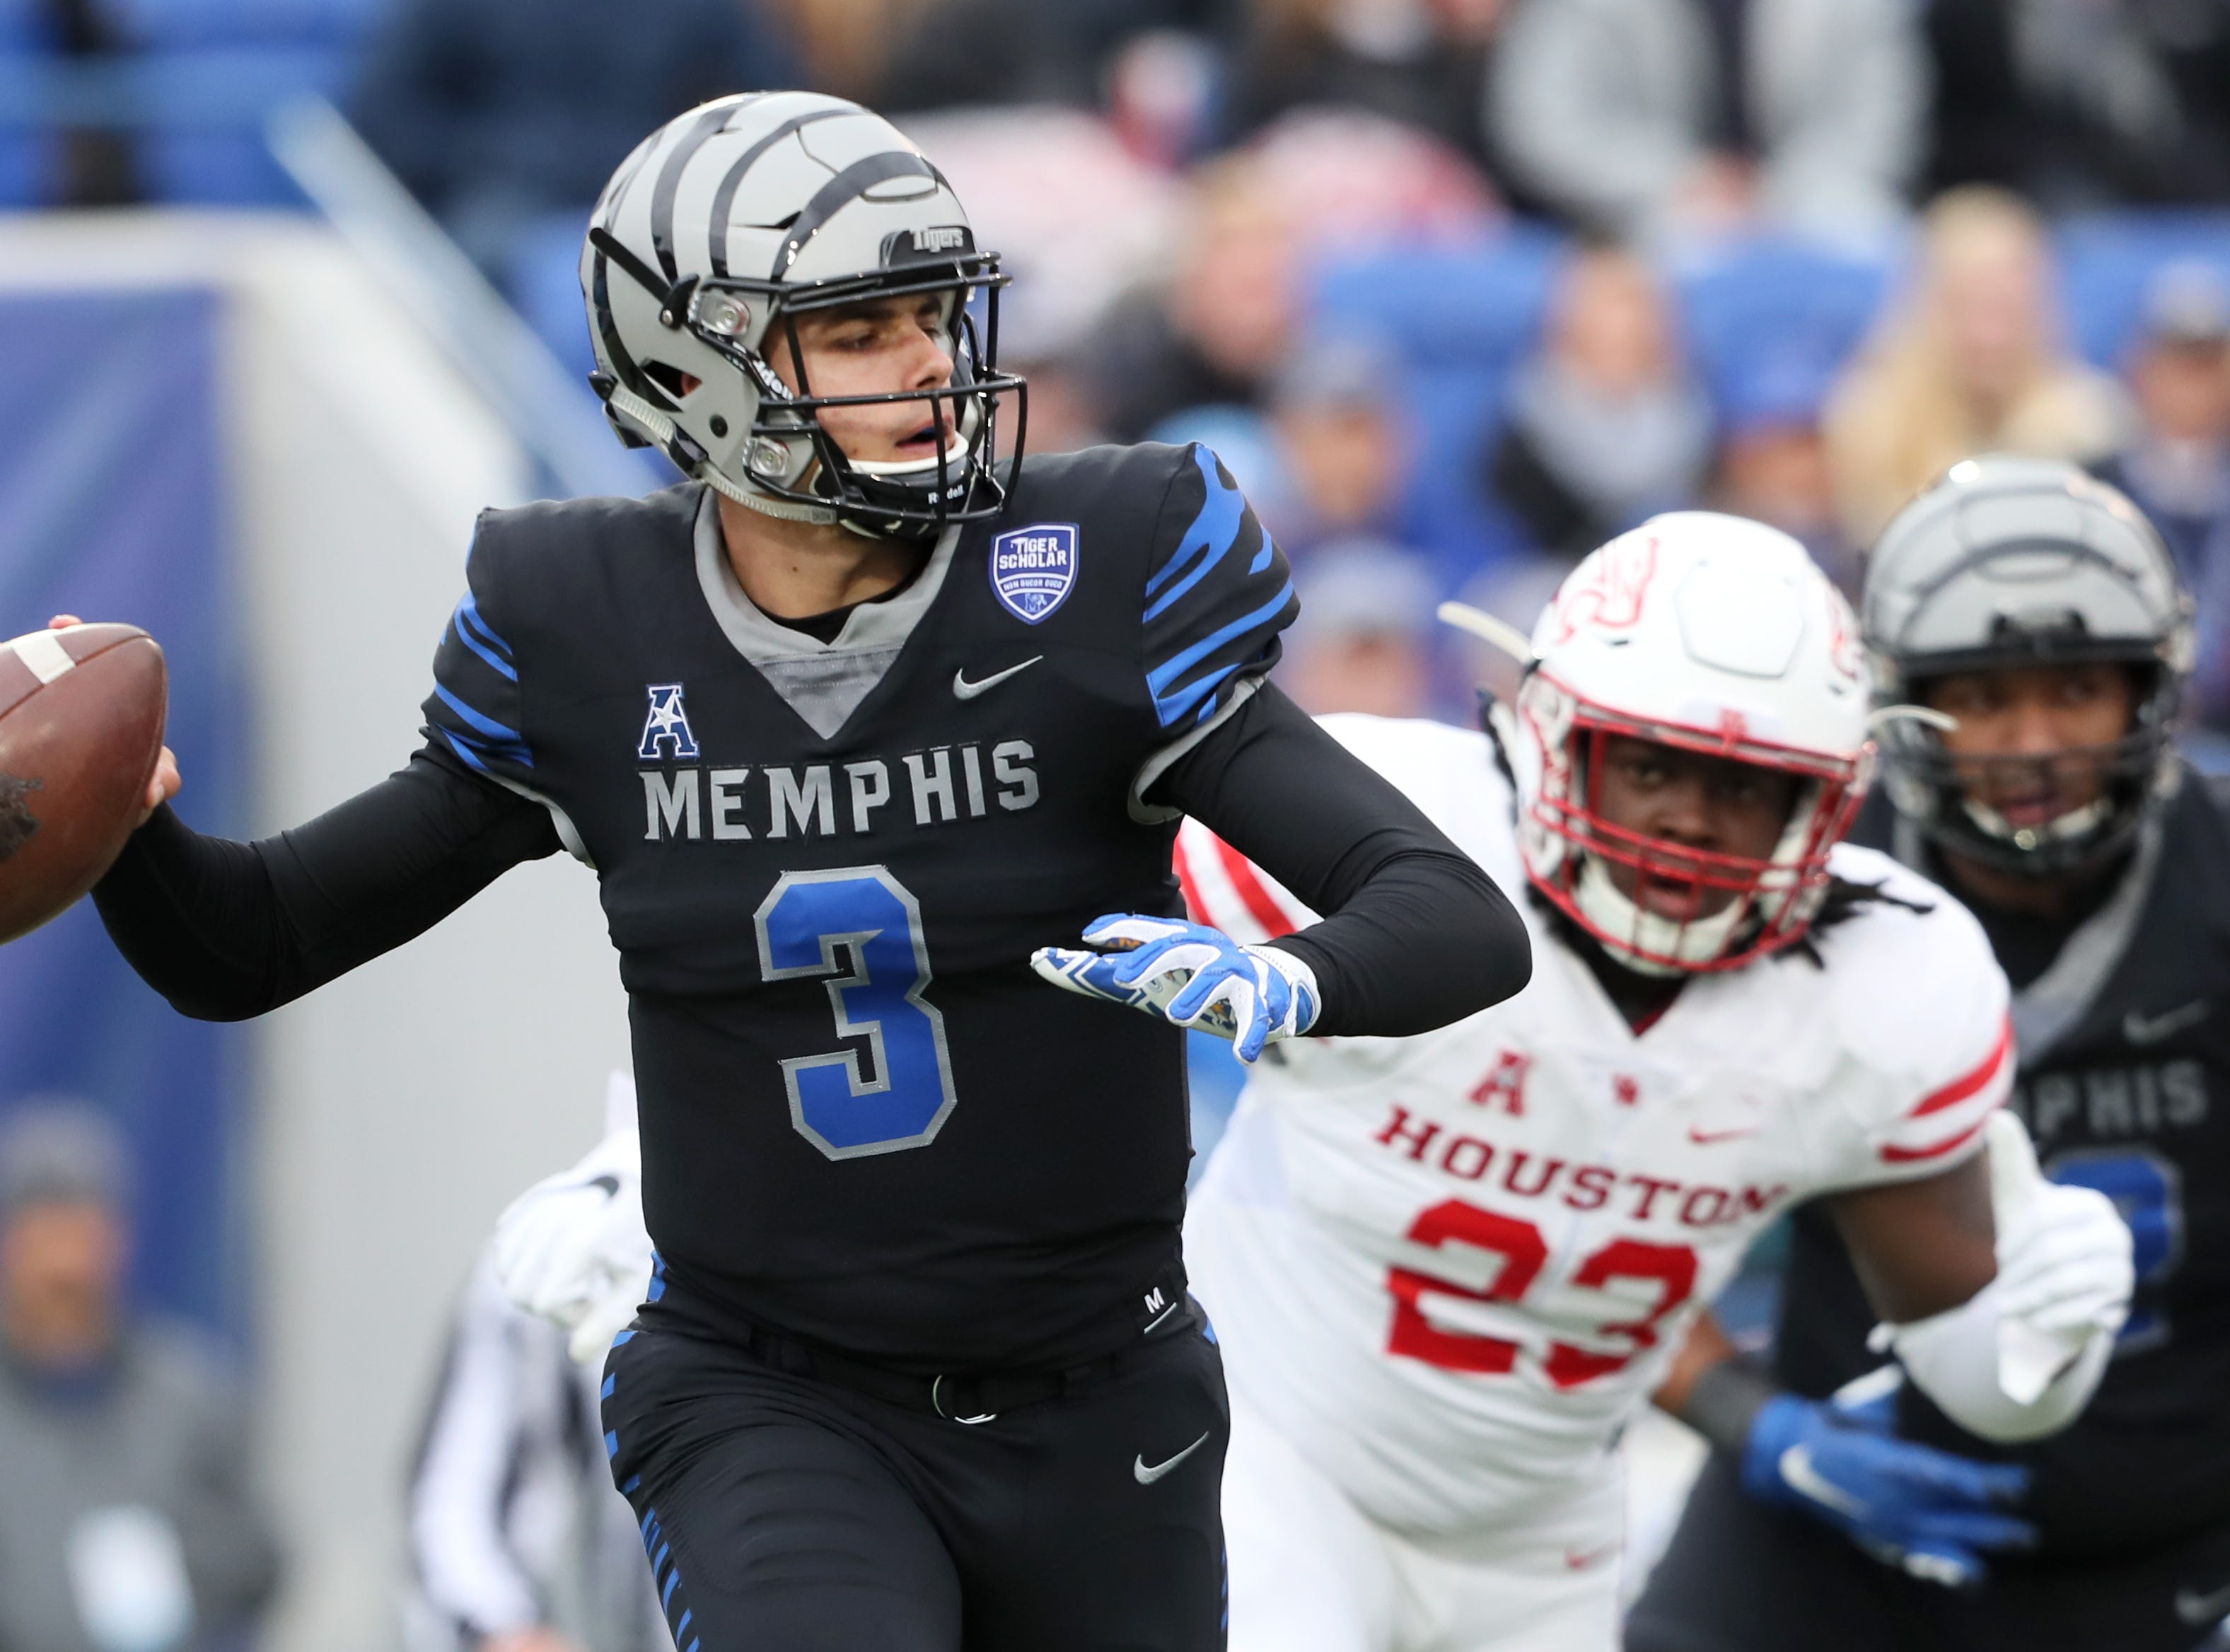 Memphis Tigers' Brady White looks to throw the ball against the Houston Cougars at the Liberty Bowl on Friday, Nov. 23, 2018.